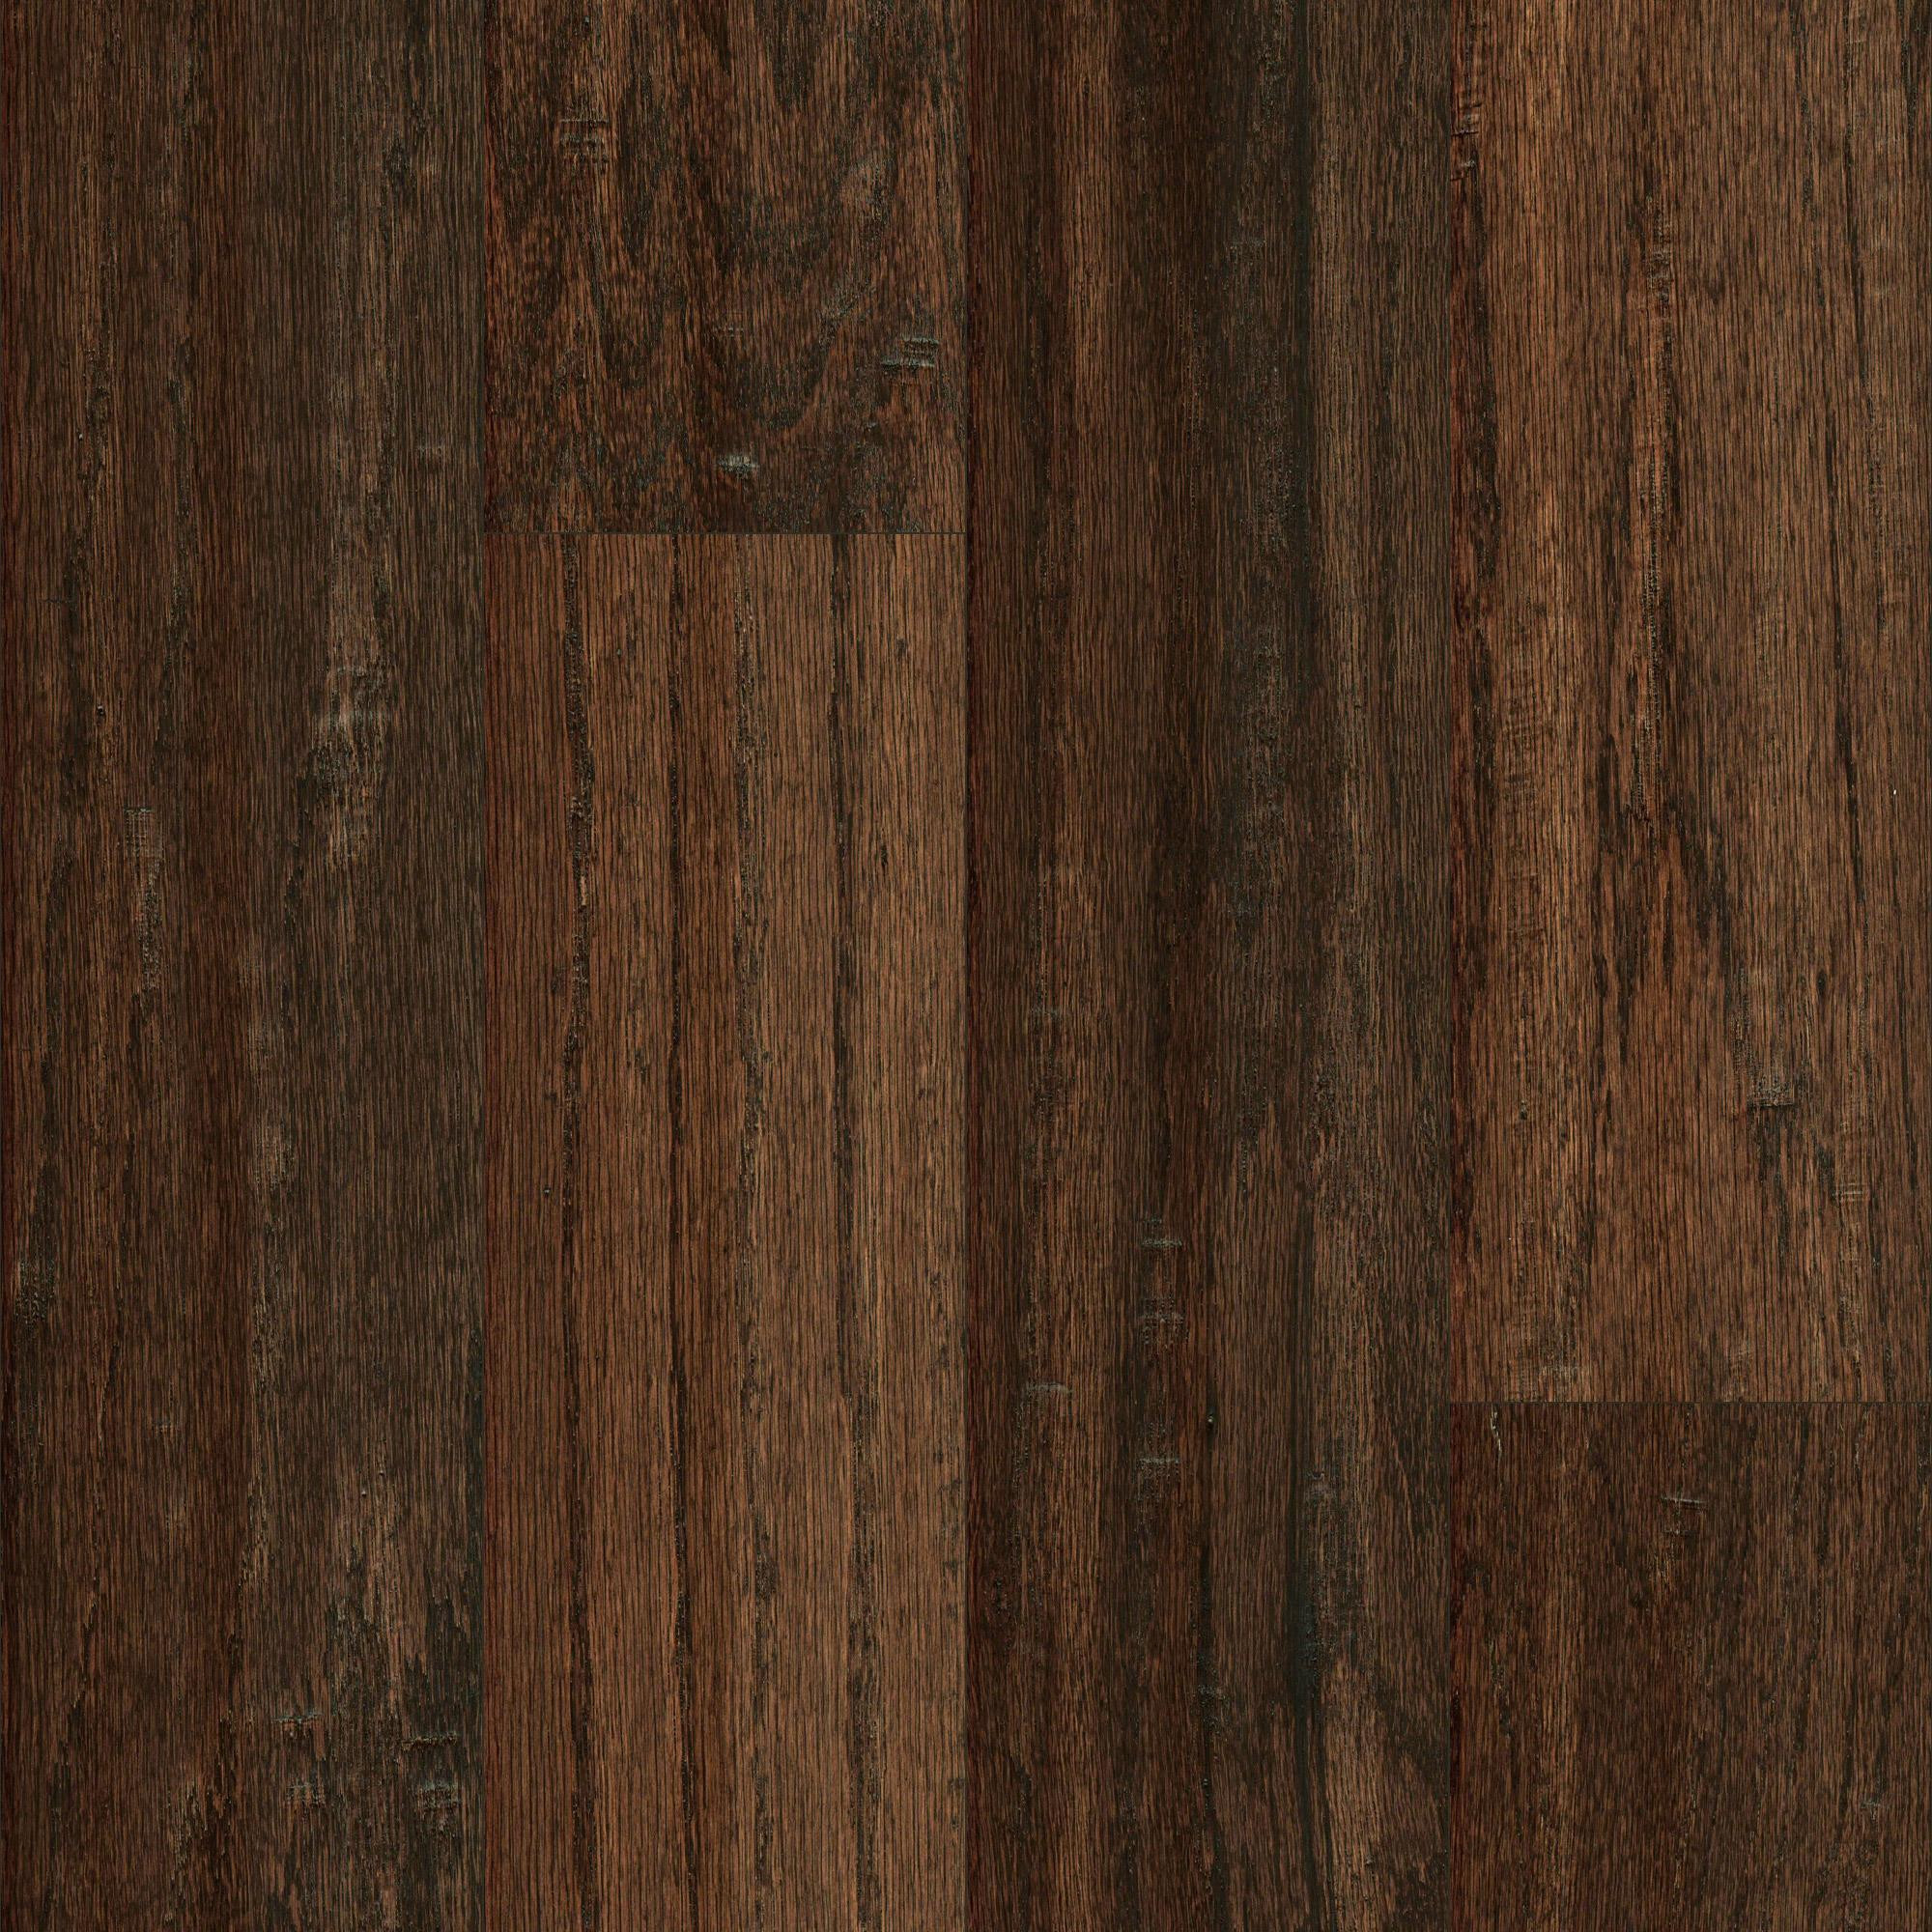 red oak hardwood flooring of mullican lincolnshire sculpted red oak laredo 5 engineered hardwood for mullican lincolnshire sculpted red oak laredo 5 engineered hardwood flooring